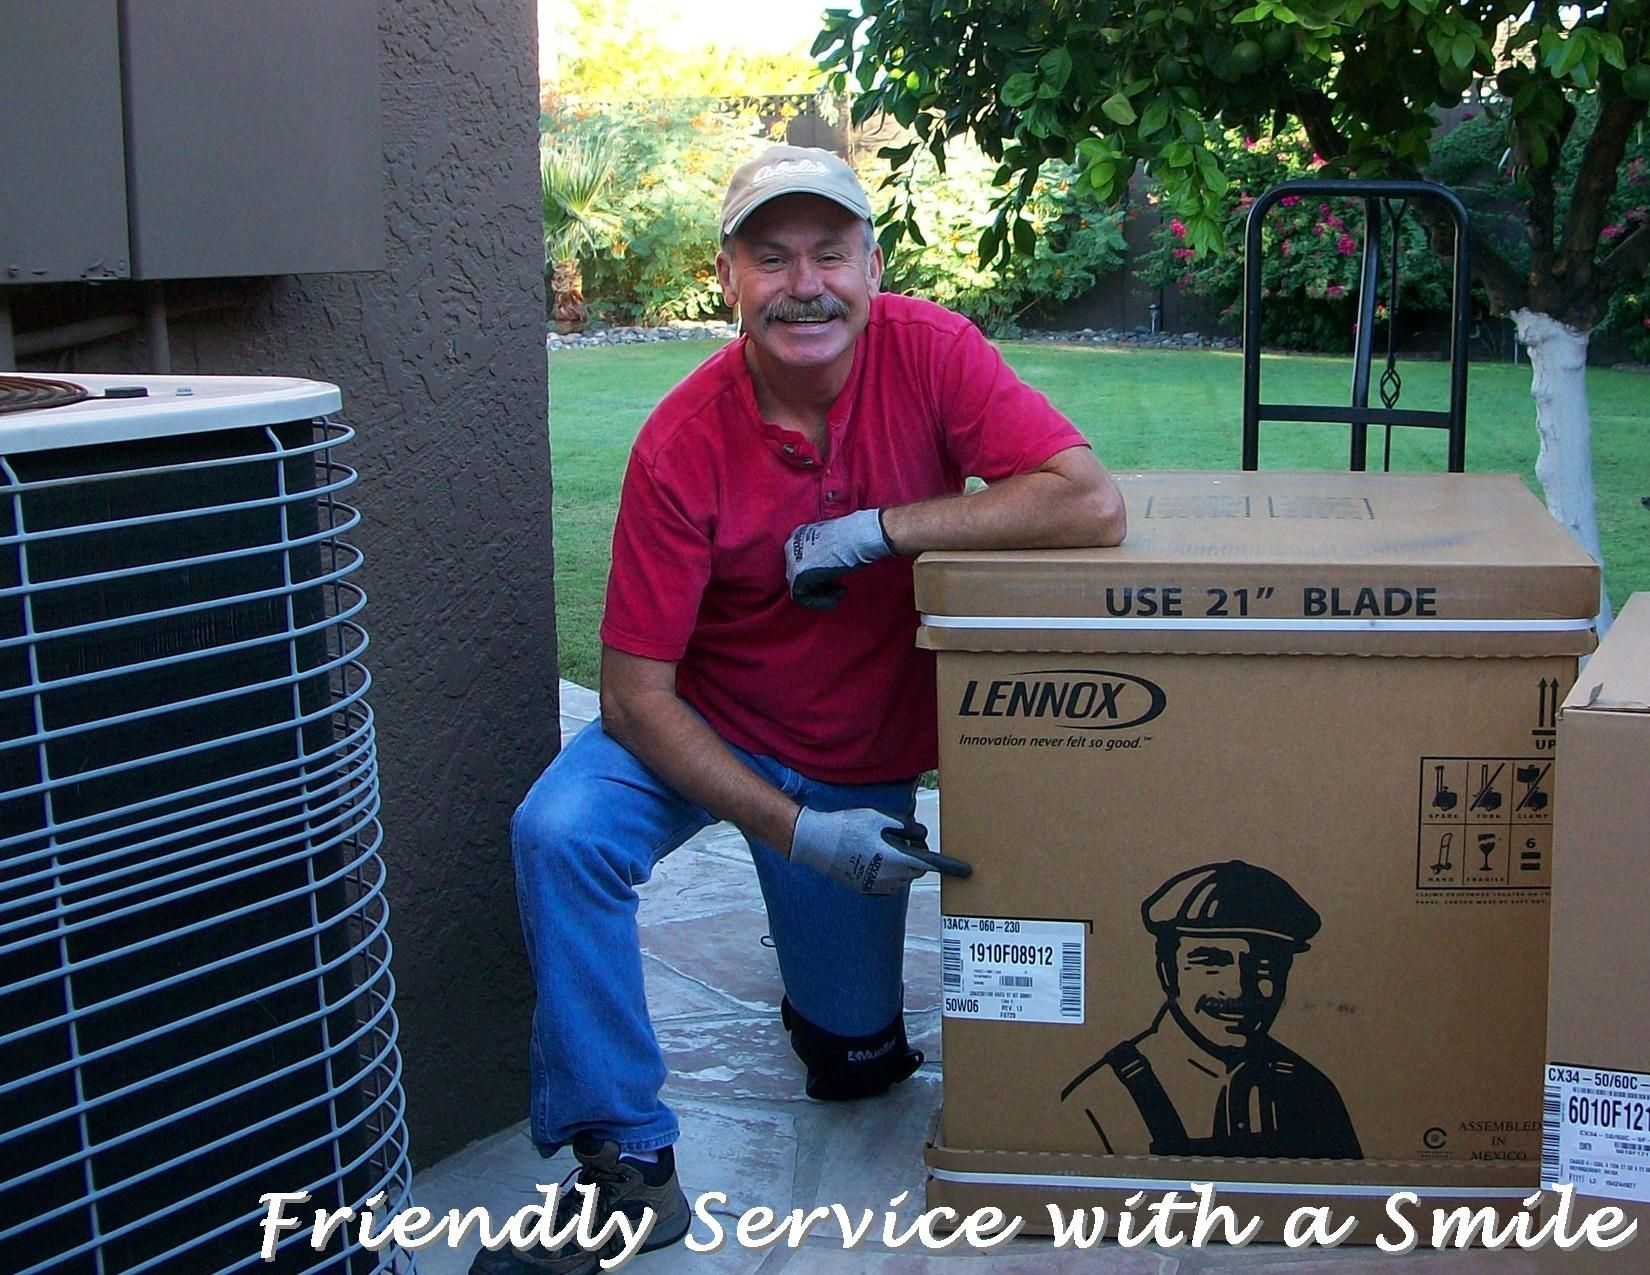 Friendly Service with a Smile (Chuck resembles Dave Lennox